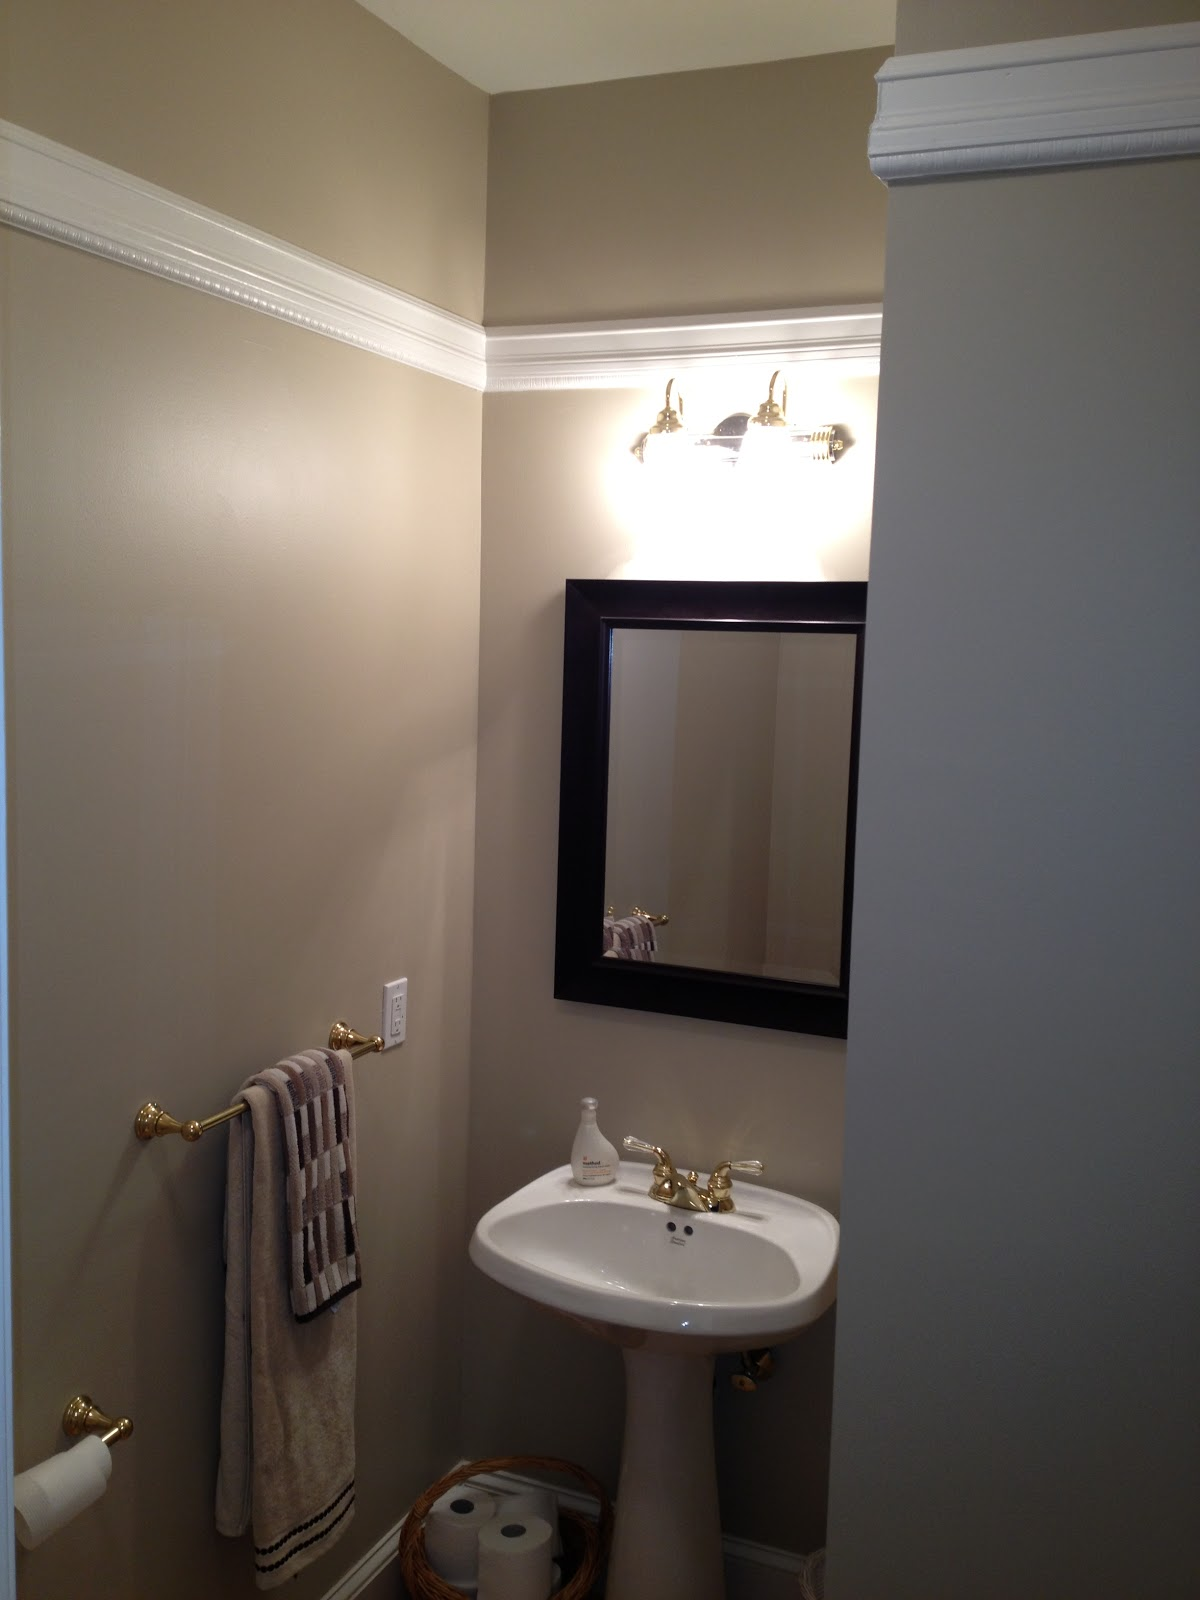 Home Addition Installed Chair Rail In High Ceiling Powder Room Home Improvement Home